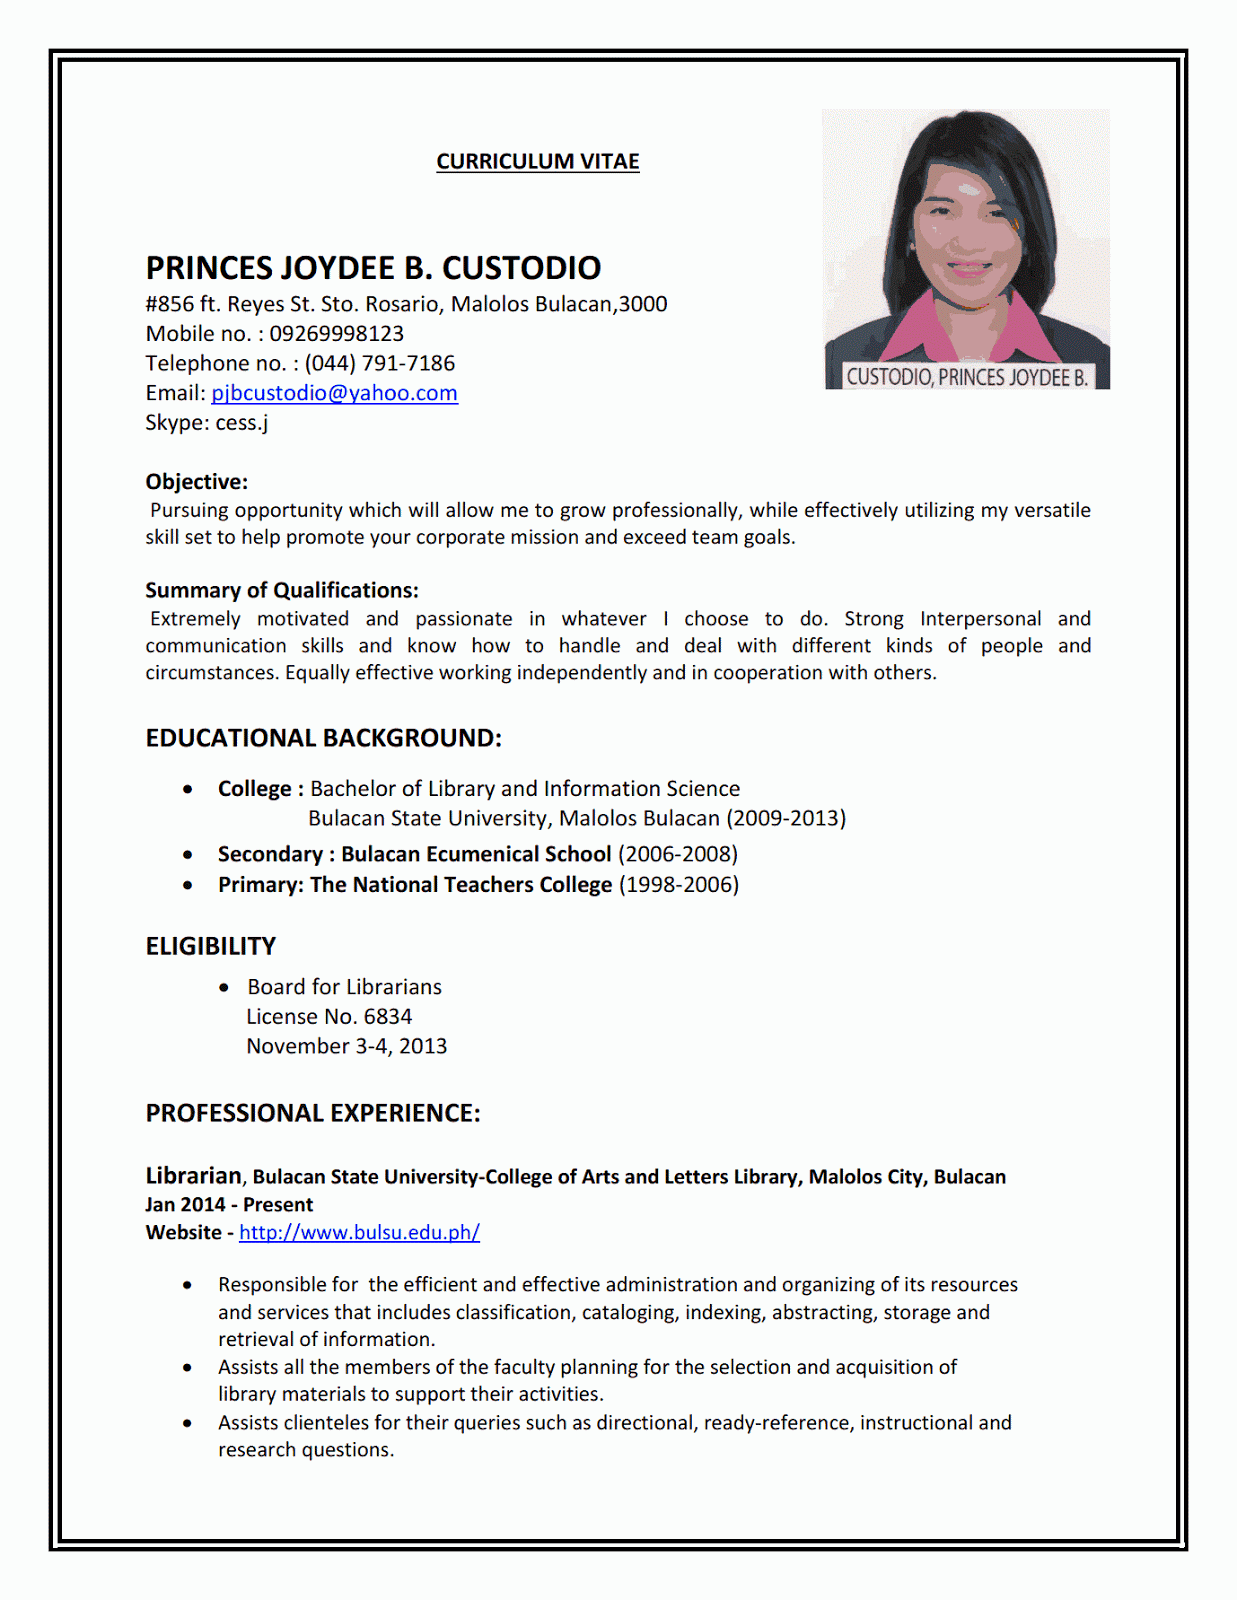 resume sample first job sample resumes - Sample Resume For University Job